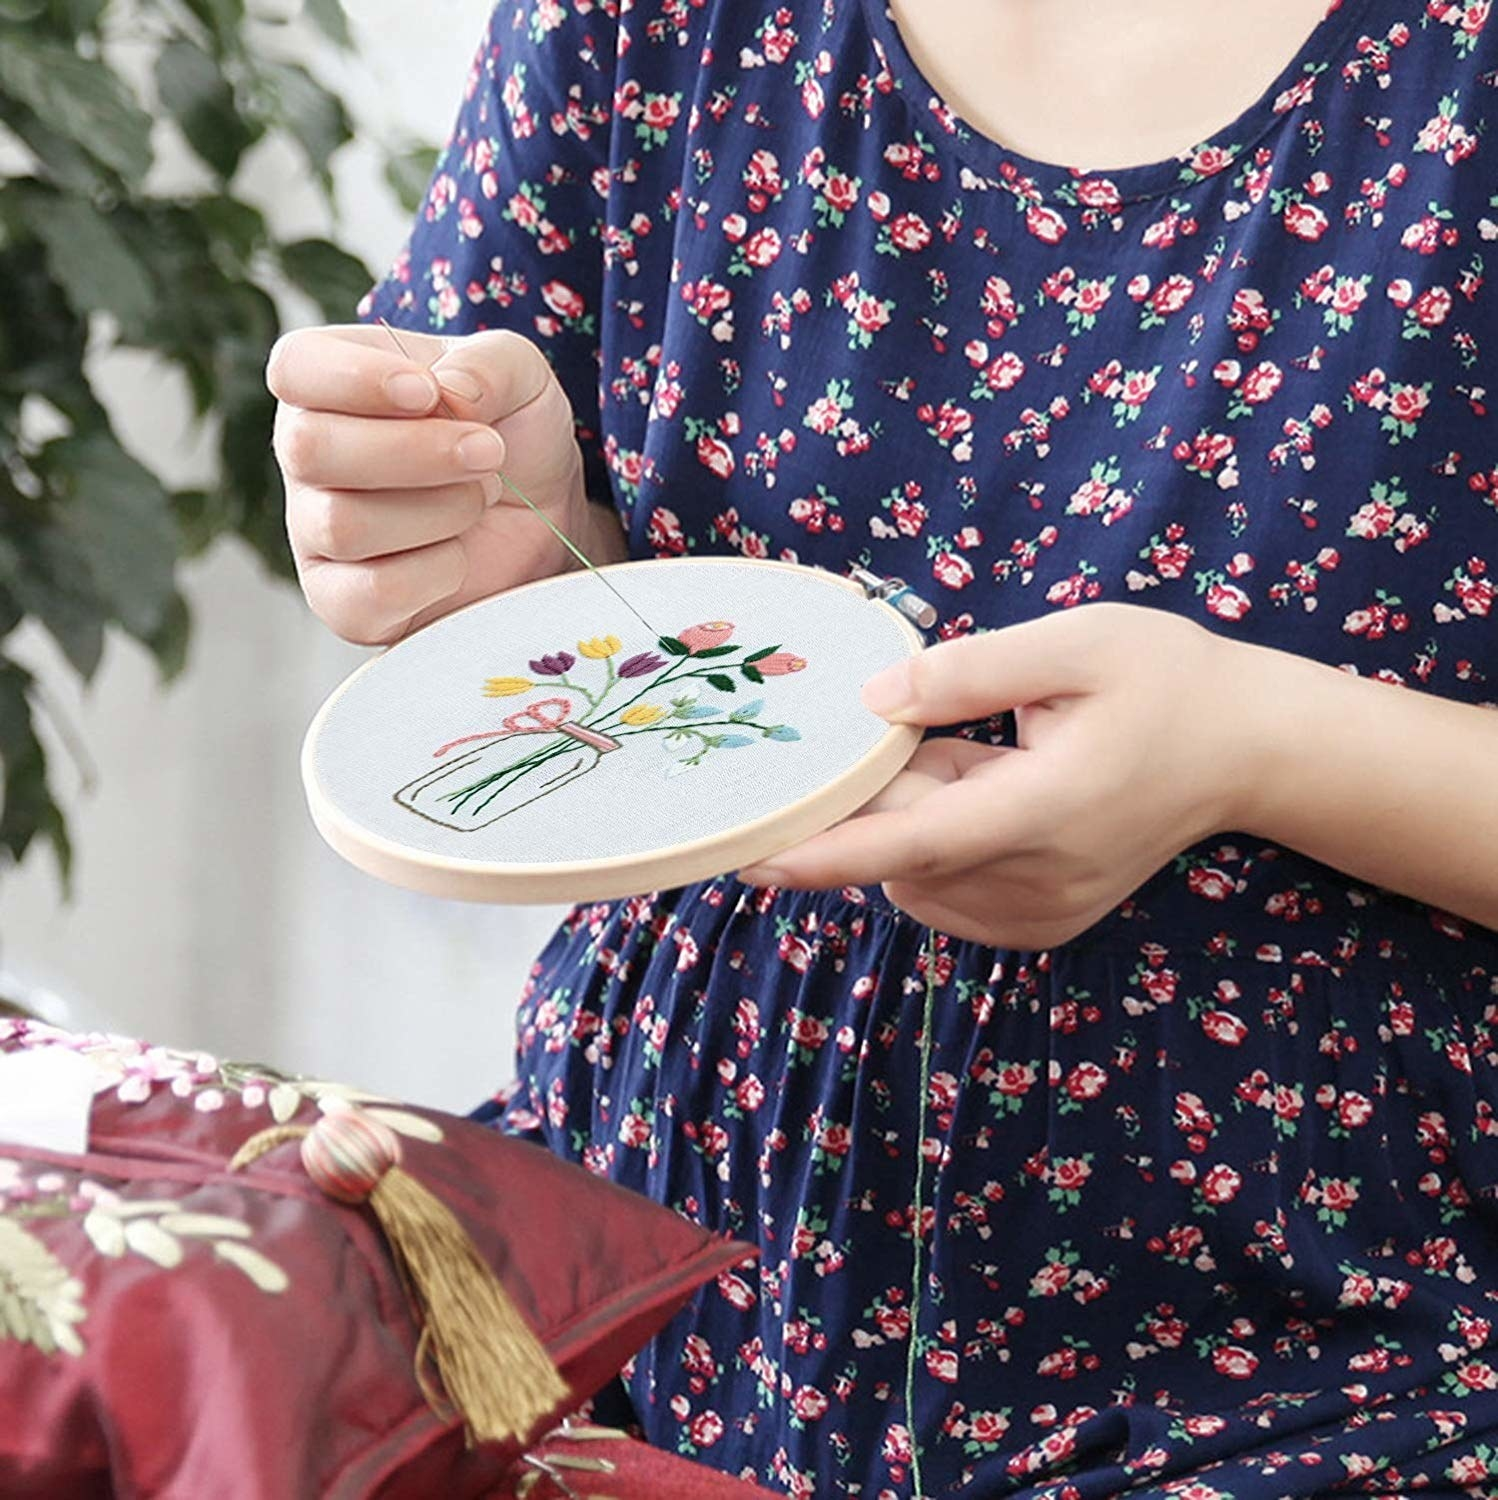 Model embroidering flowers into a hoop